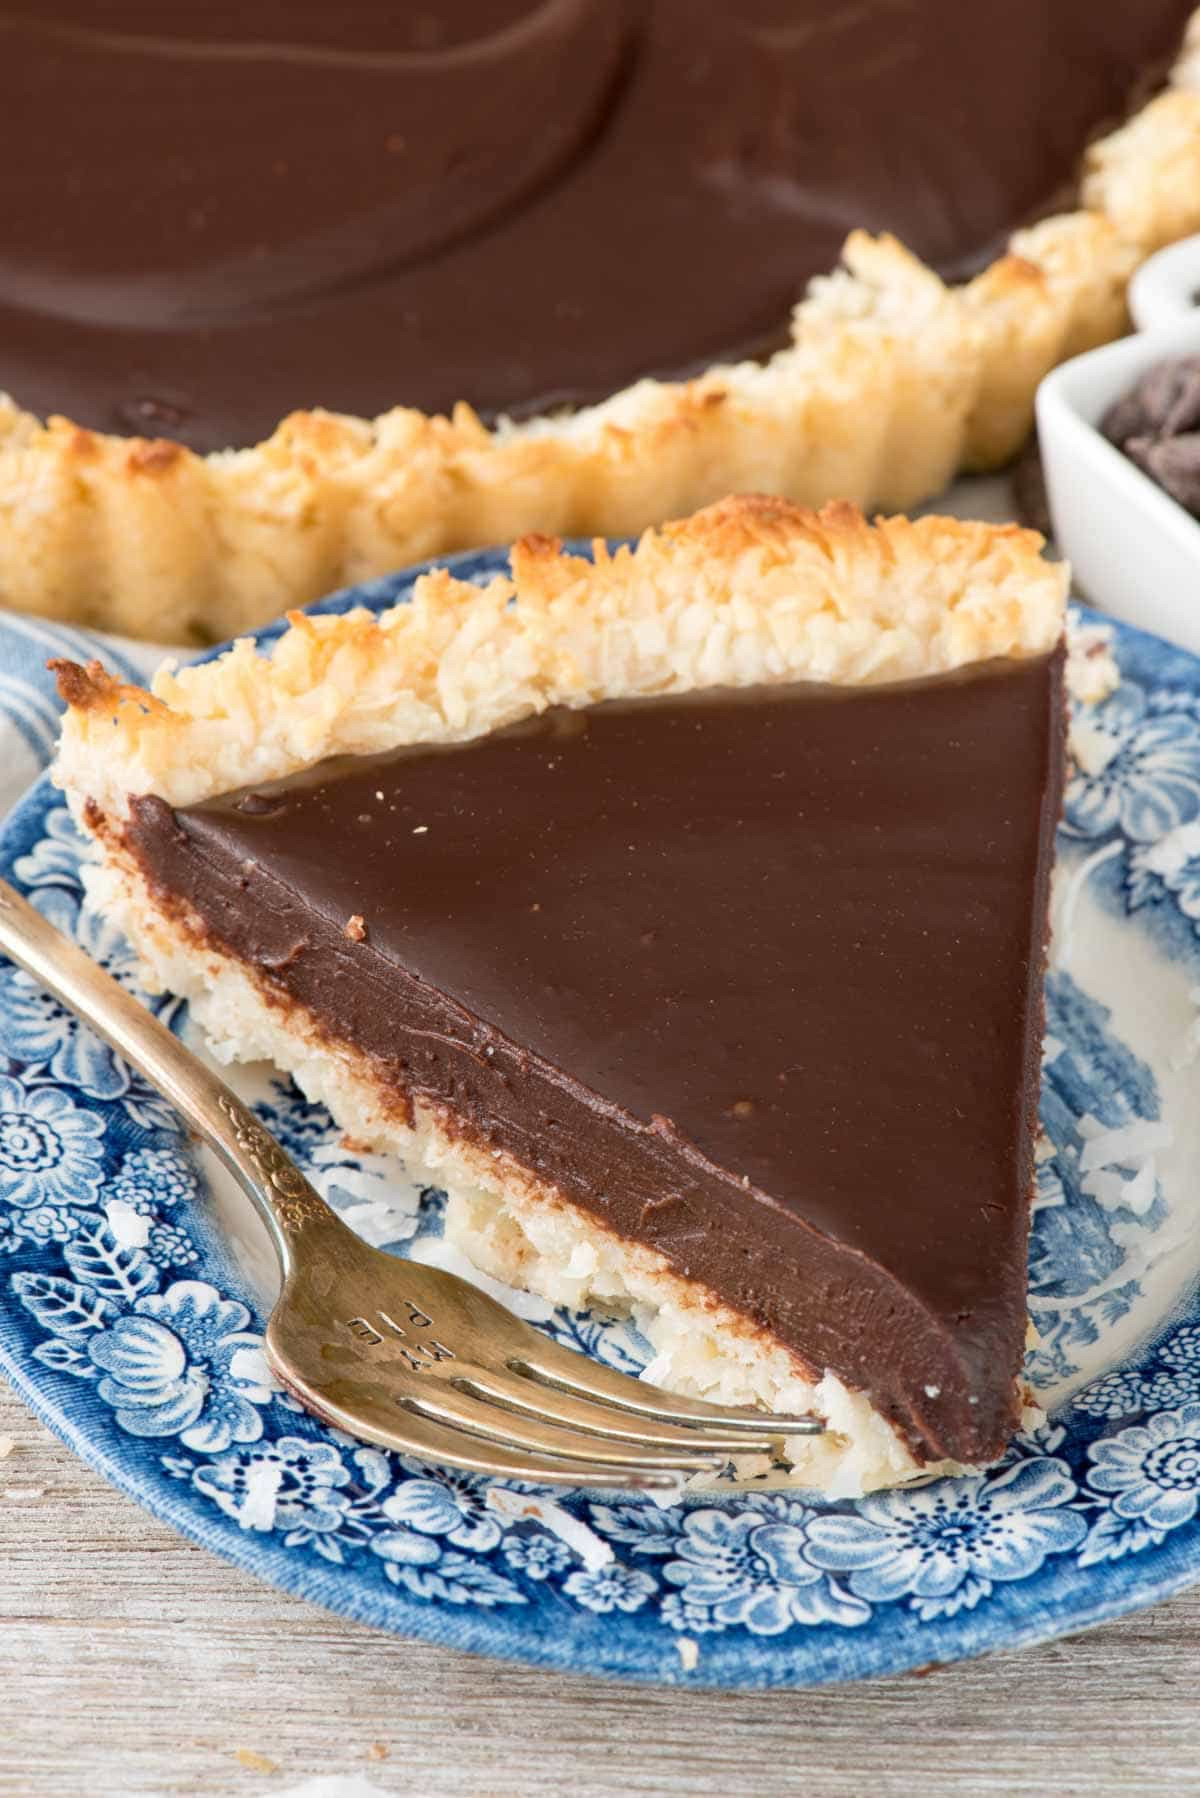 Best Chocolate Pie Recipe  70 of the Best Pie Recipes Cupcakes & Kale Chips